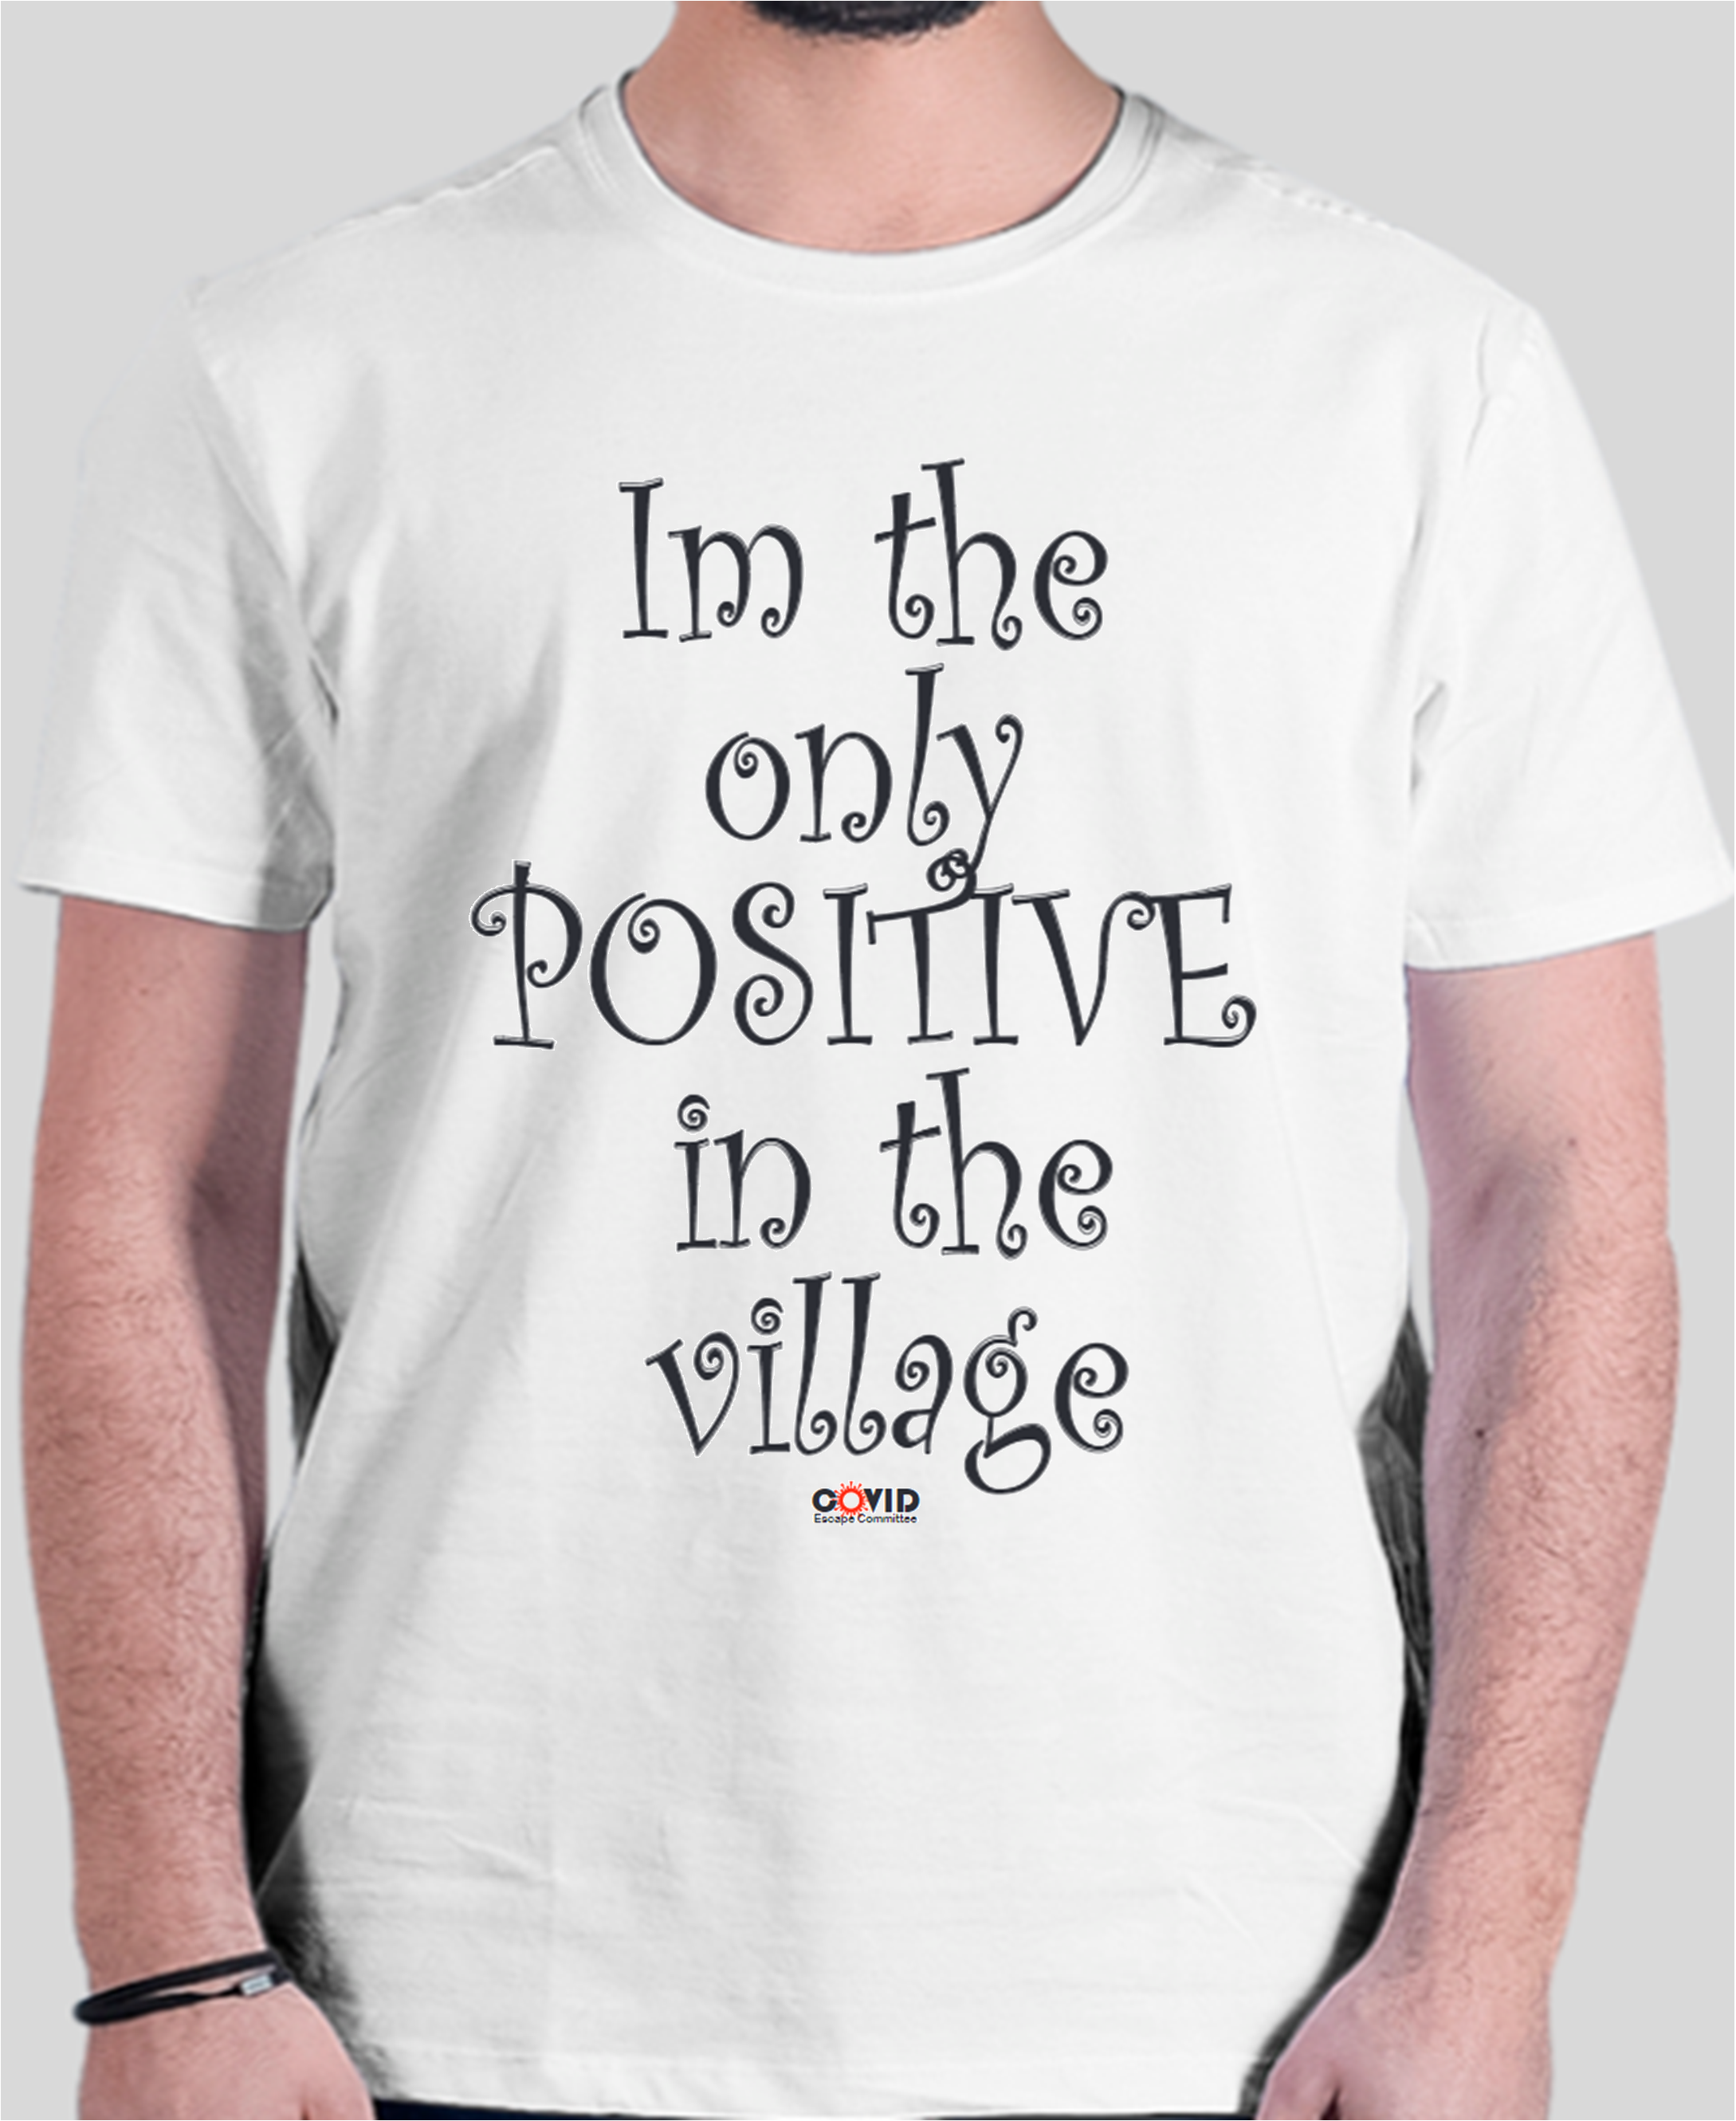 CP-013 I'M THE ONLY POSITIVE IN THE VILLAGE